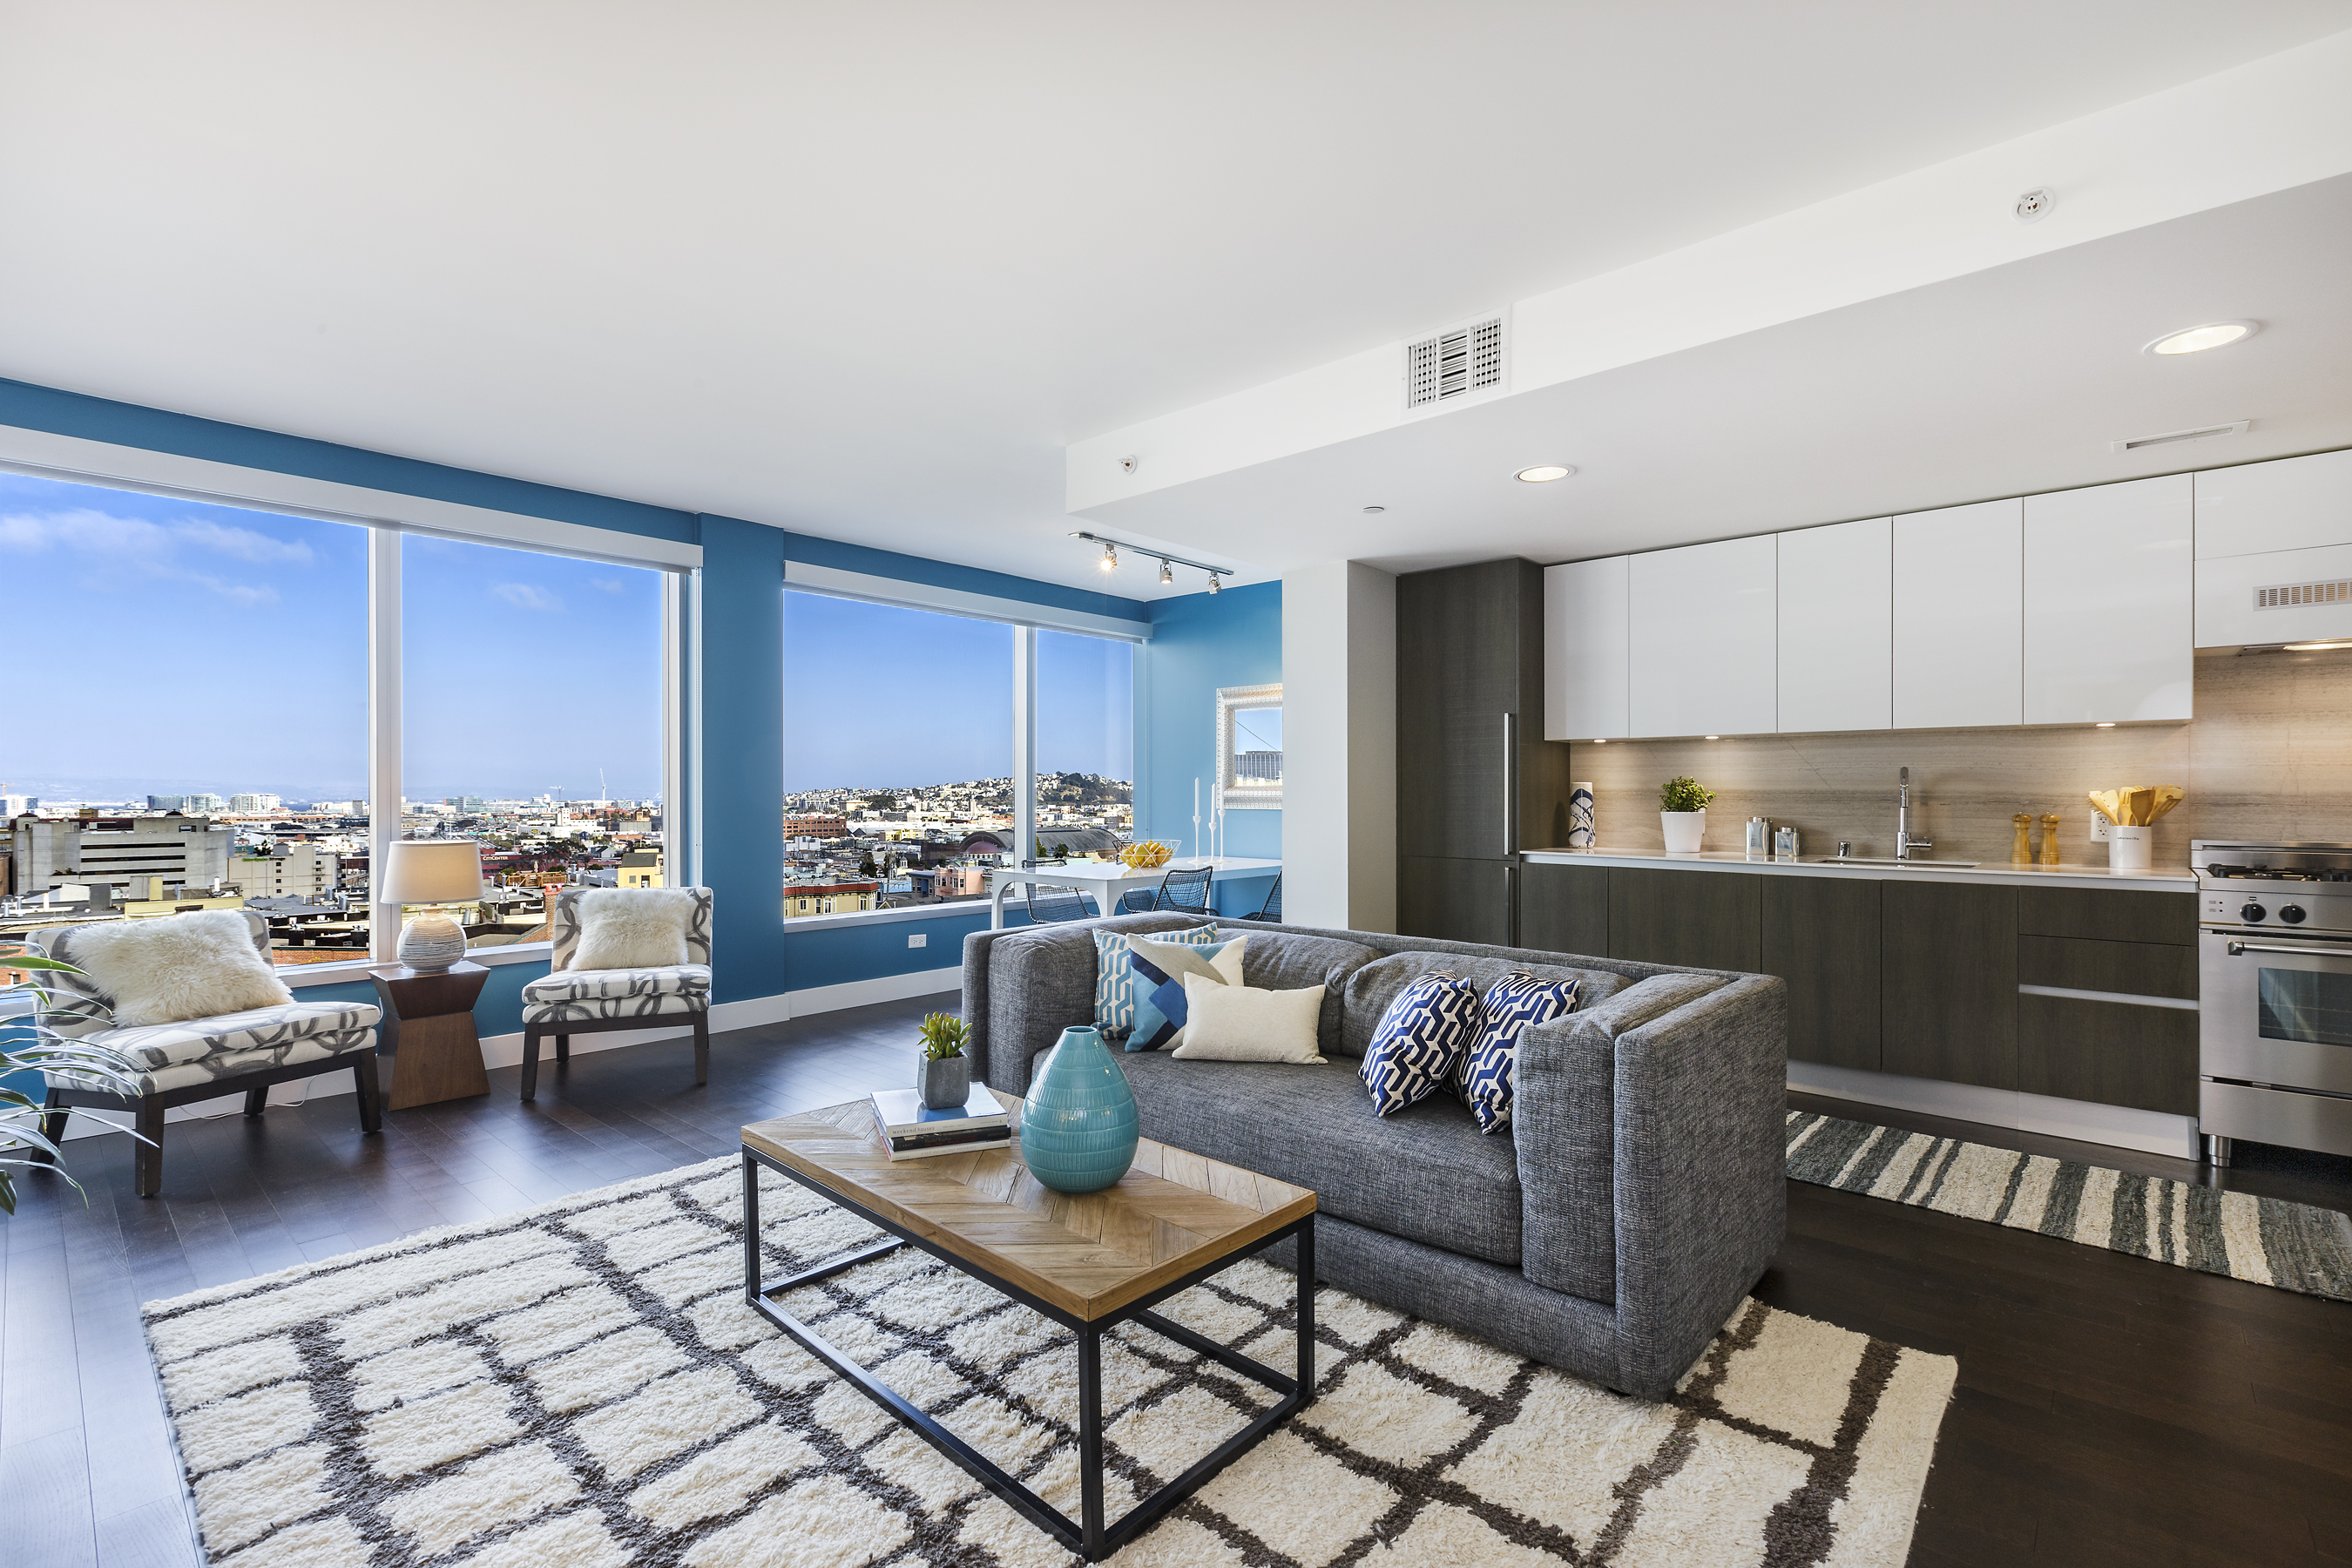 For Sale | 8 Buchanan #612 | Hayes Valley | $1,295,000